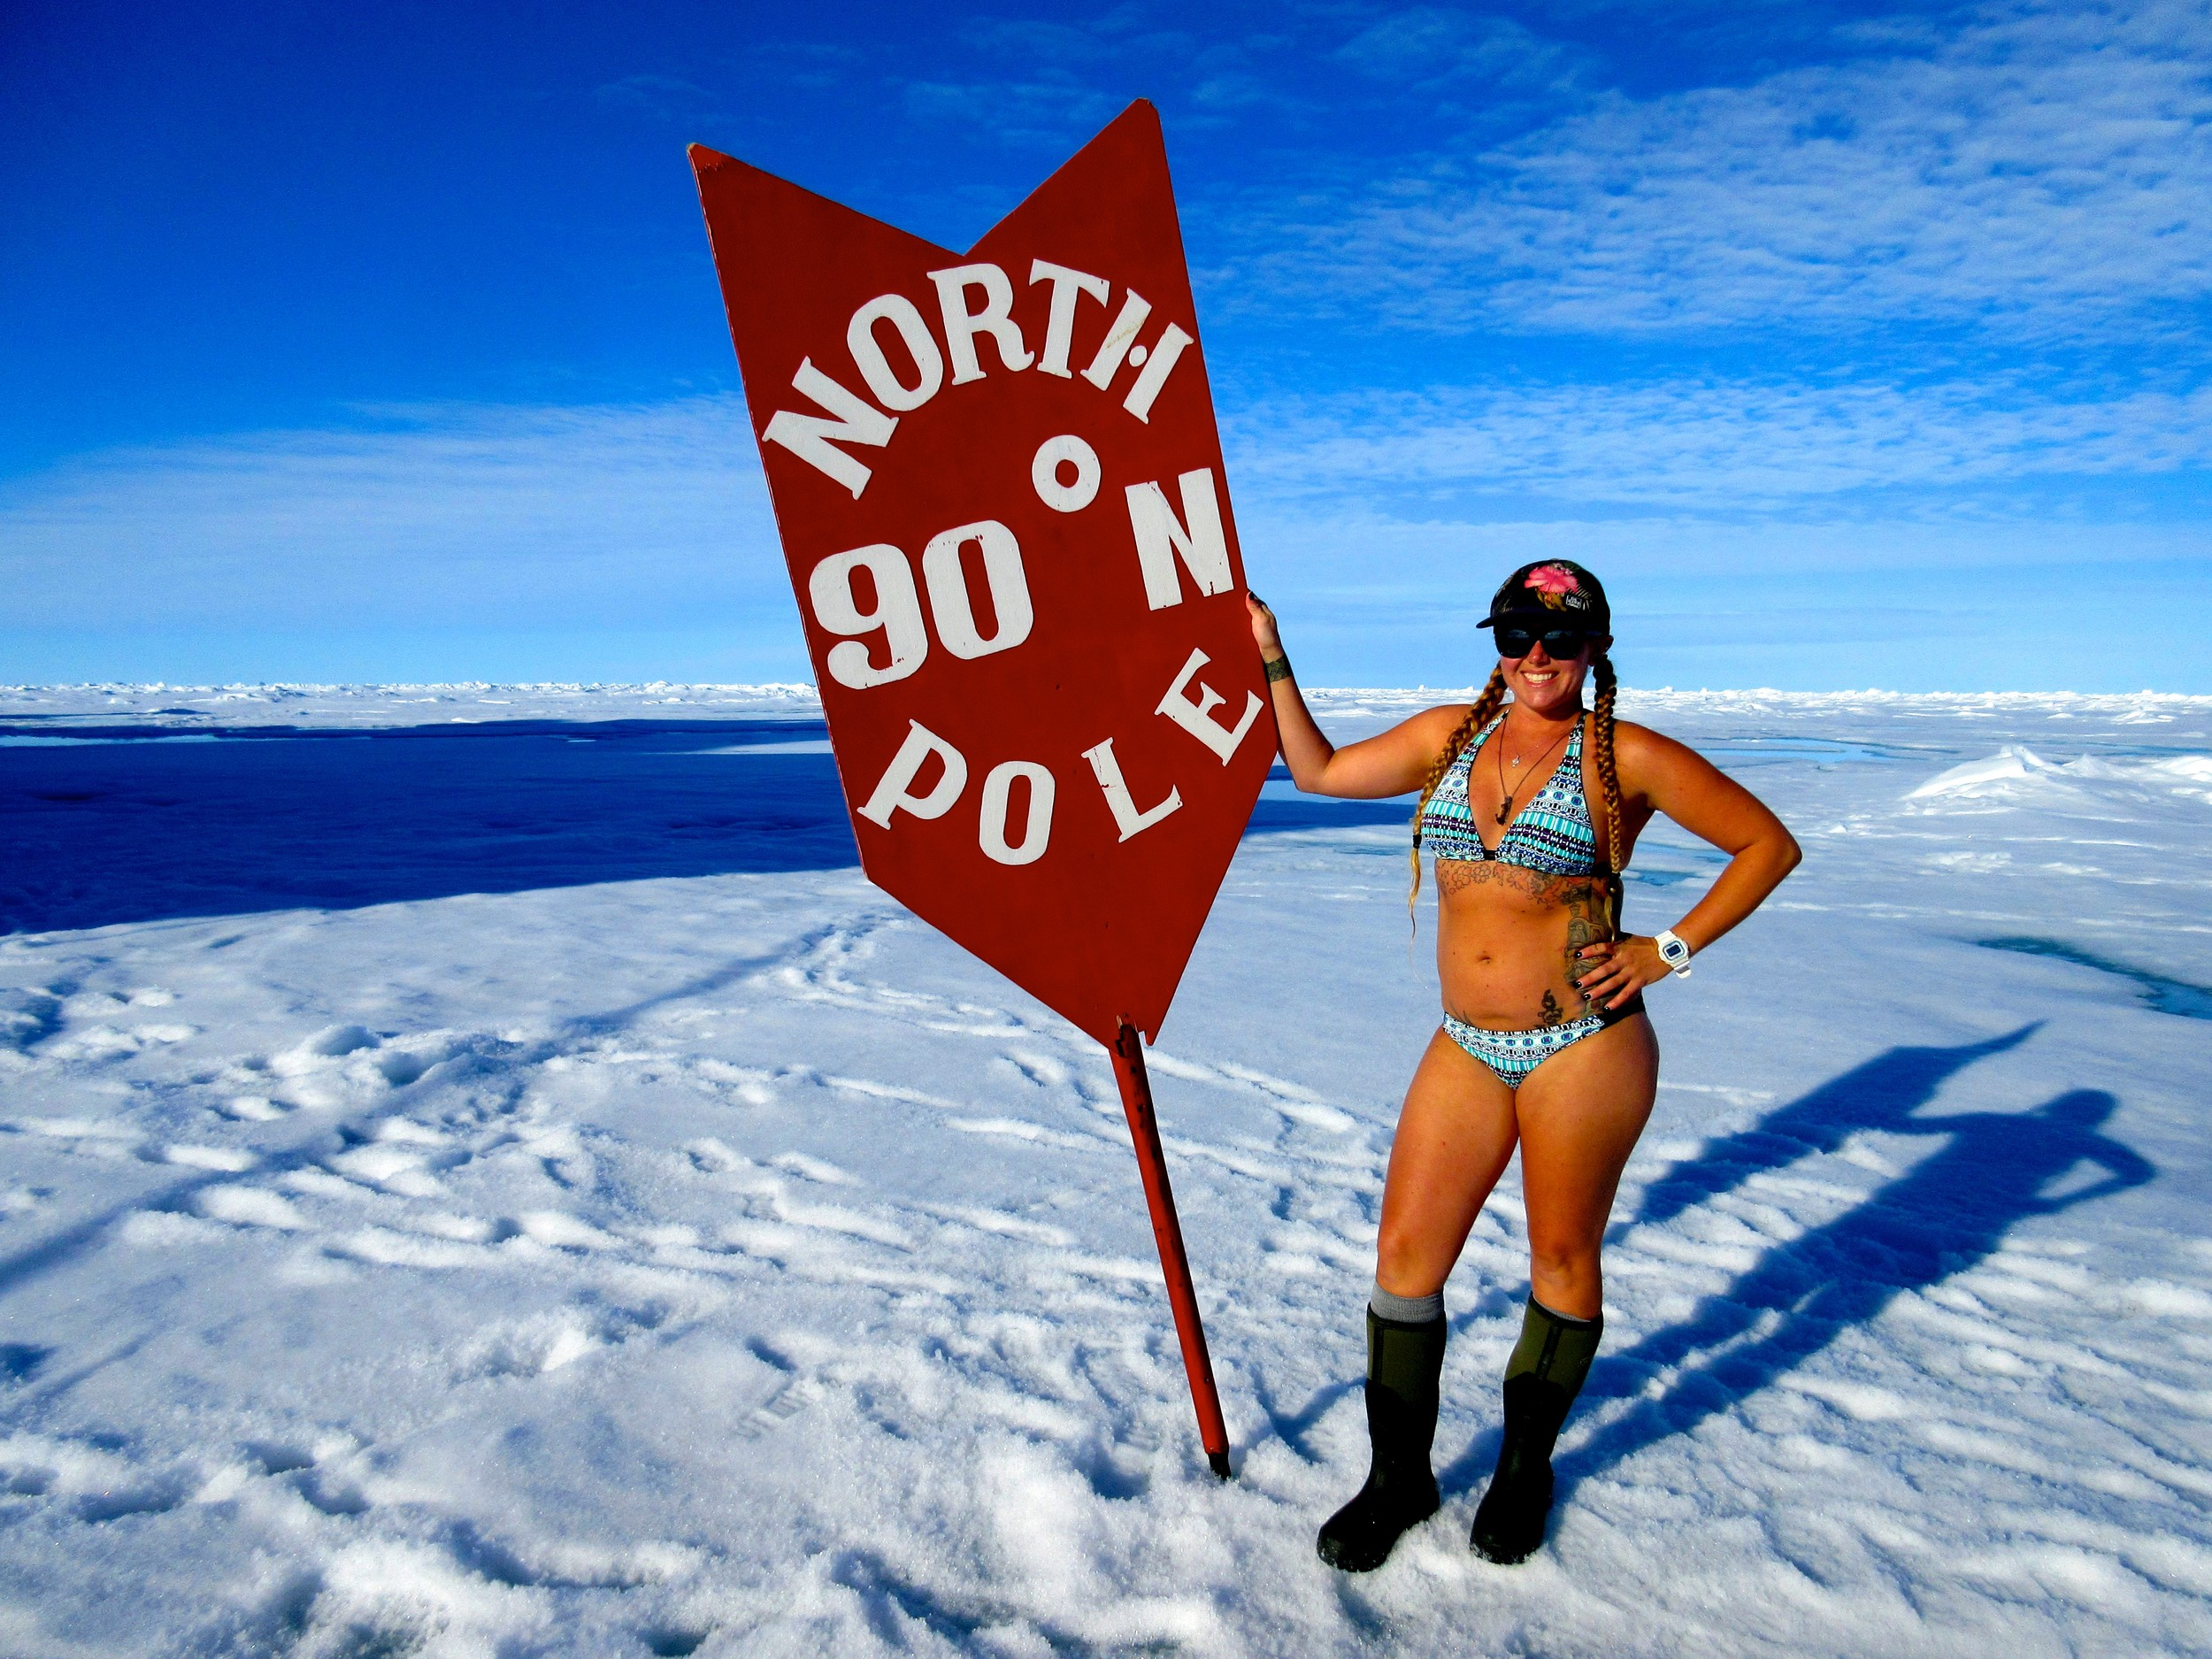 Posing in a bikini at the North Pole in 2016 was no big deal for Breezy Grenier of Portsmouth, who scuba dives year round in New England and is used to cold weather.